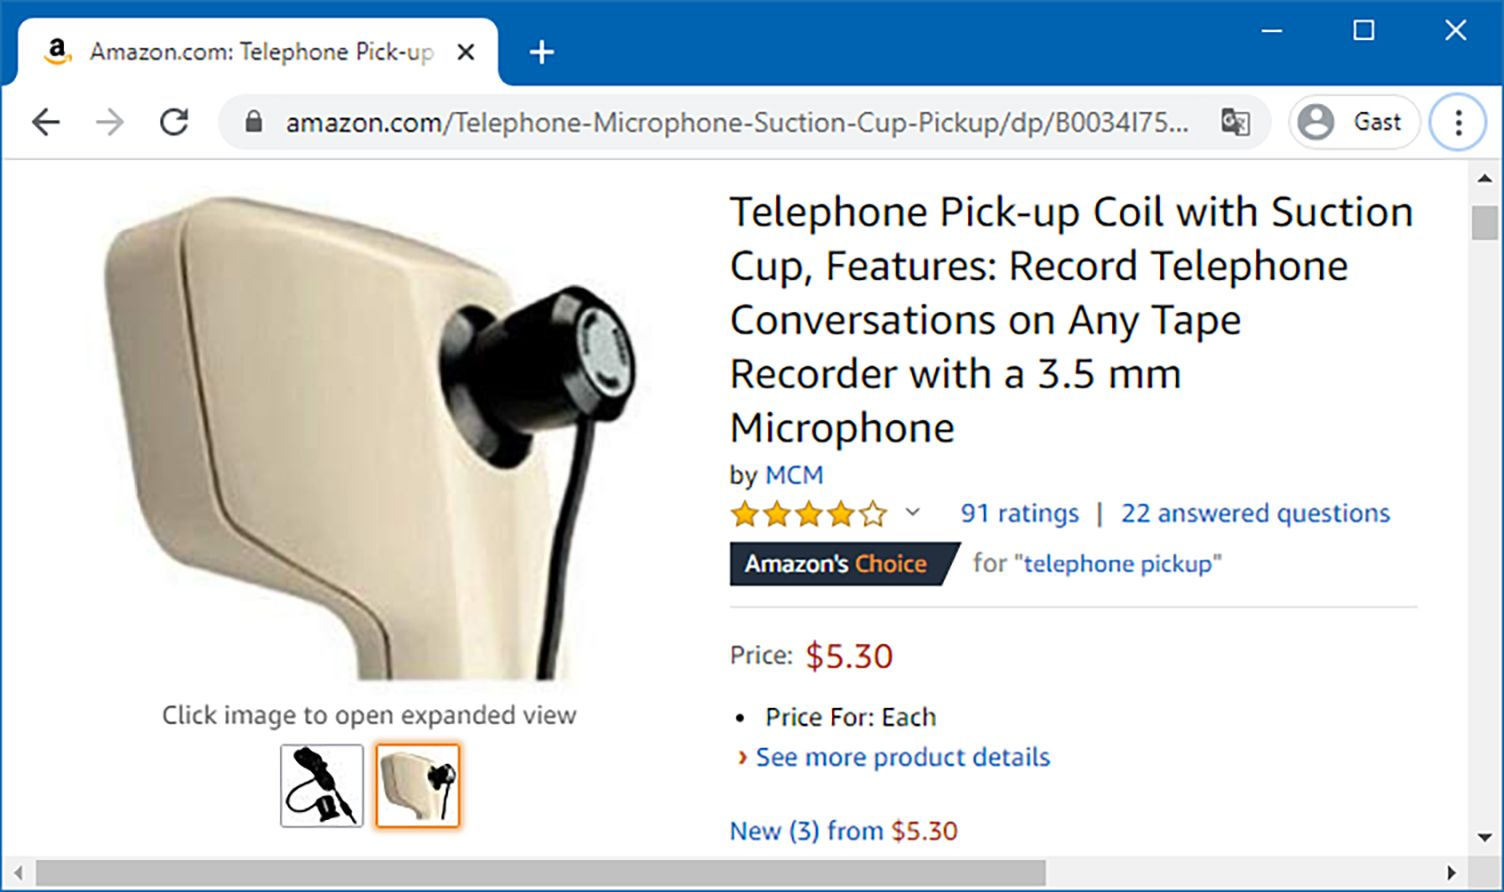 c't Amazon Screenshot